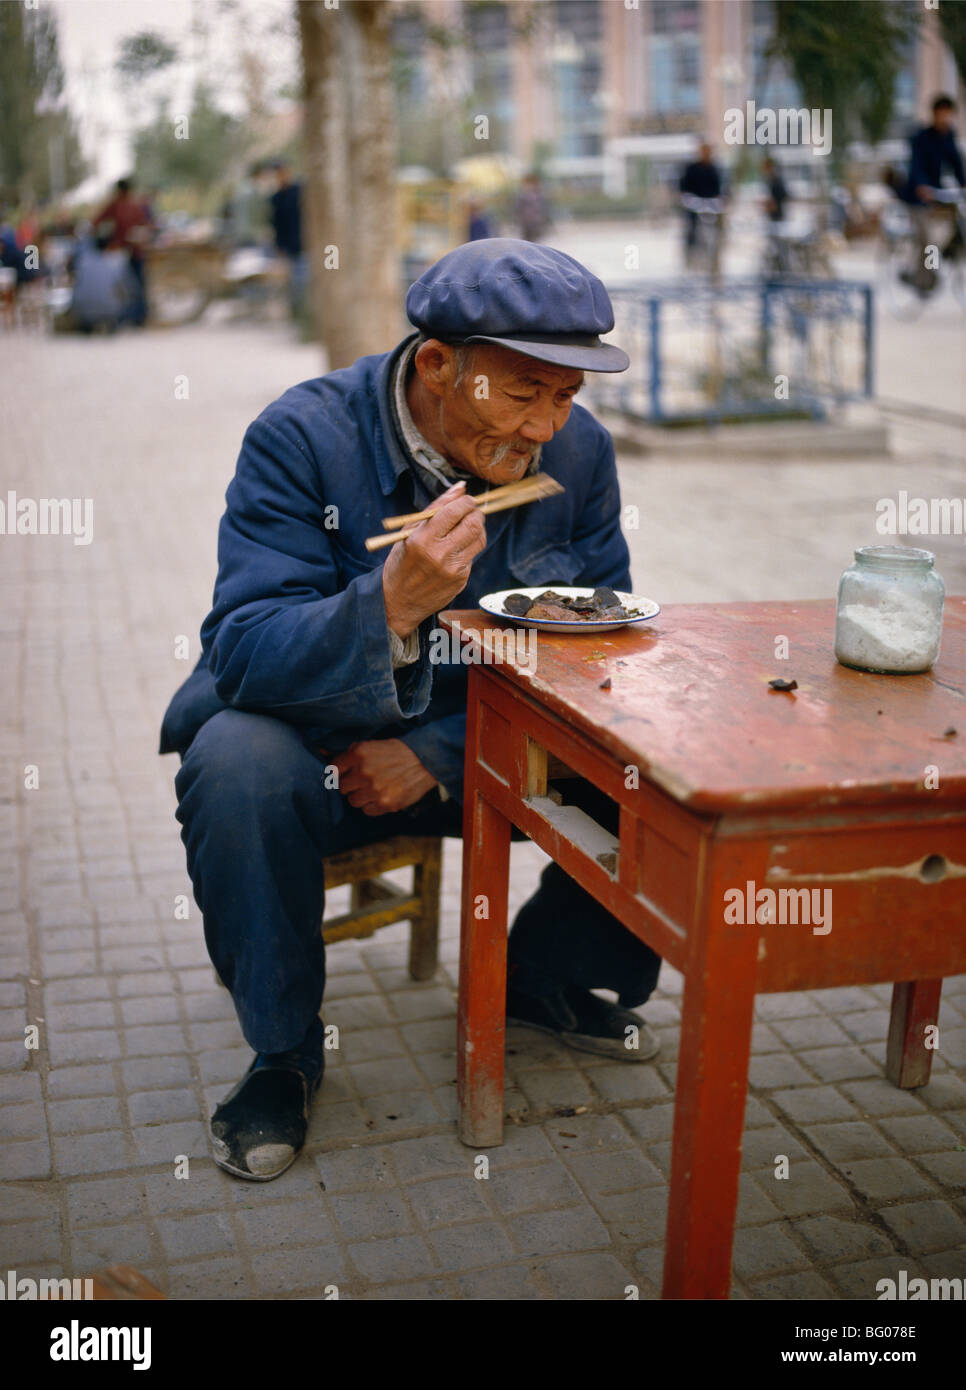 Street restaurant in Dunhuang. Gansu province, China, Asia - Stock Image